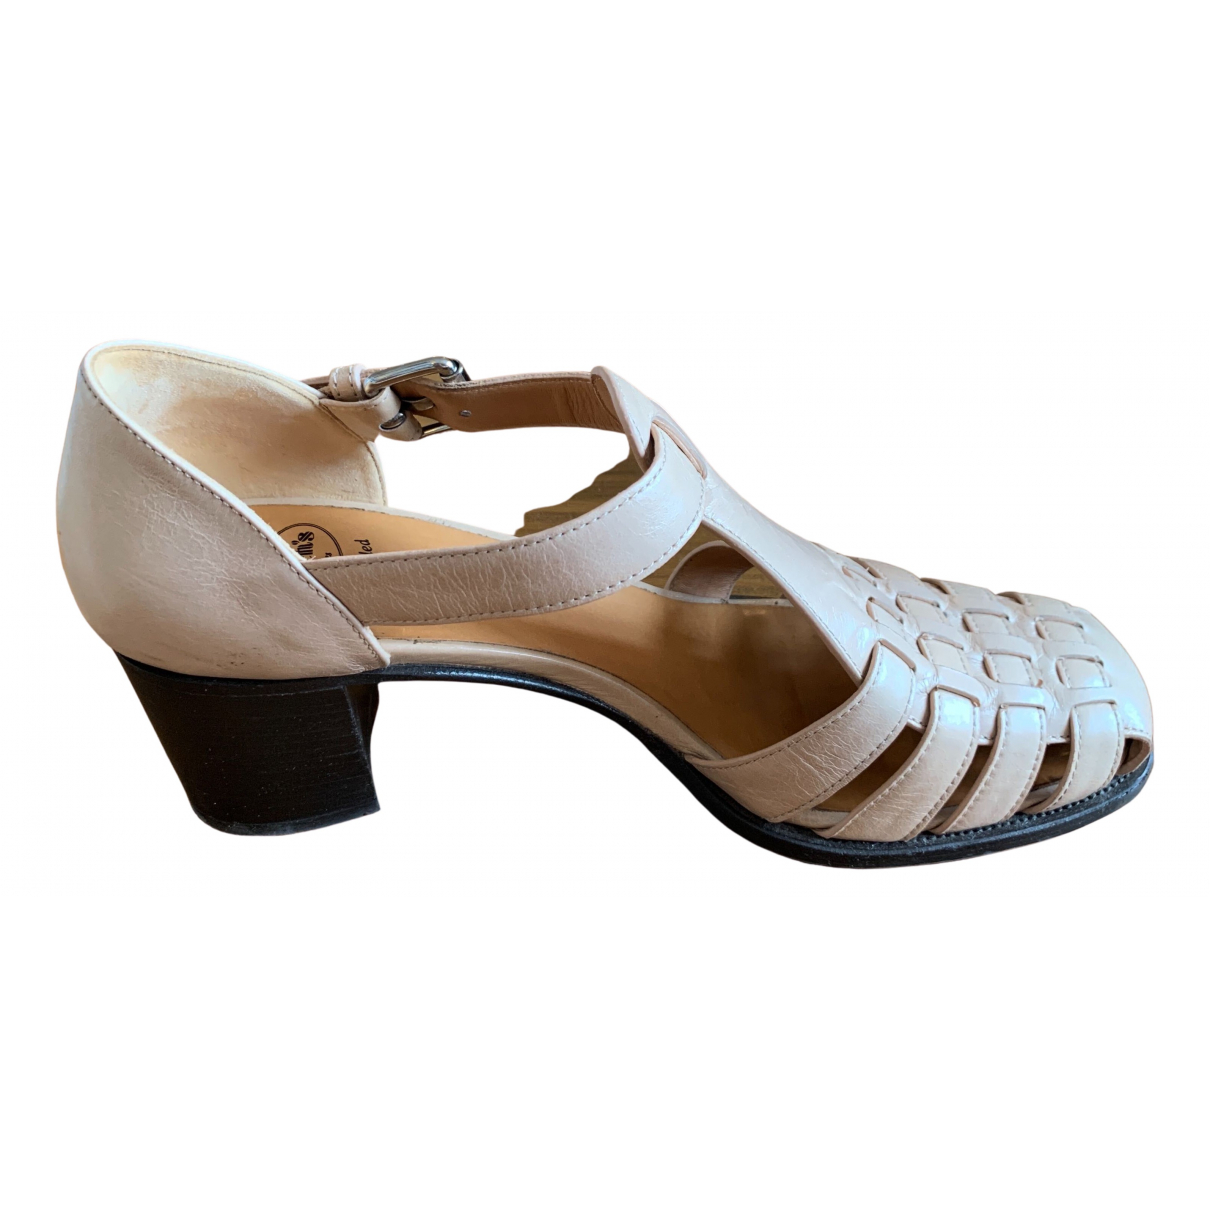 Churchs \N Sandalen in  Beige Leder